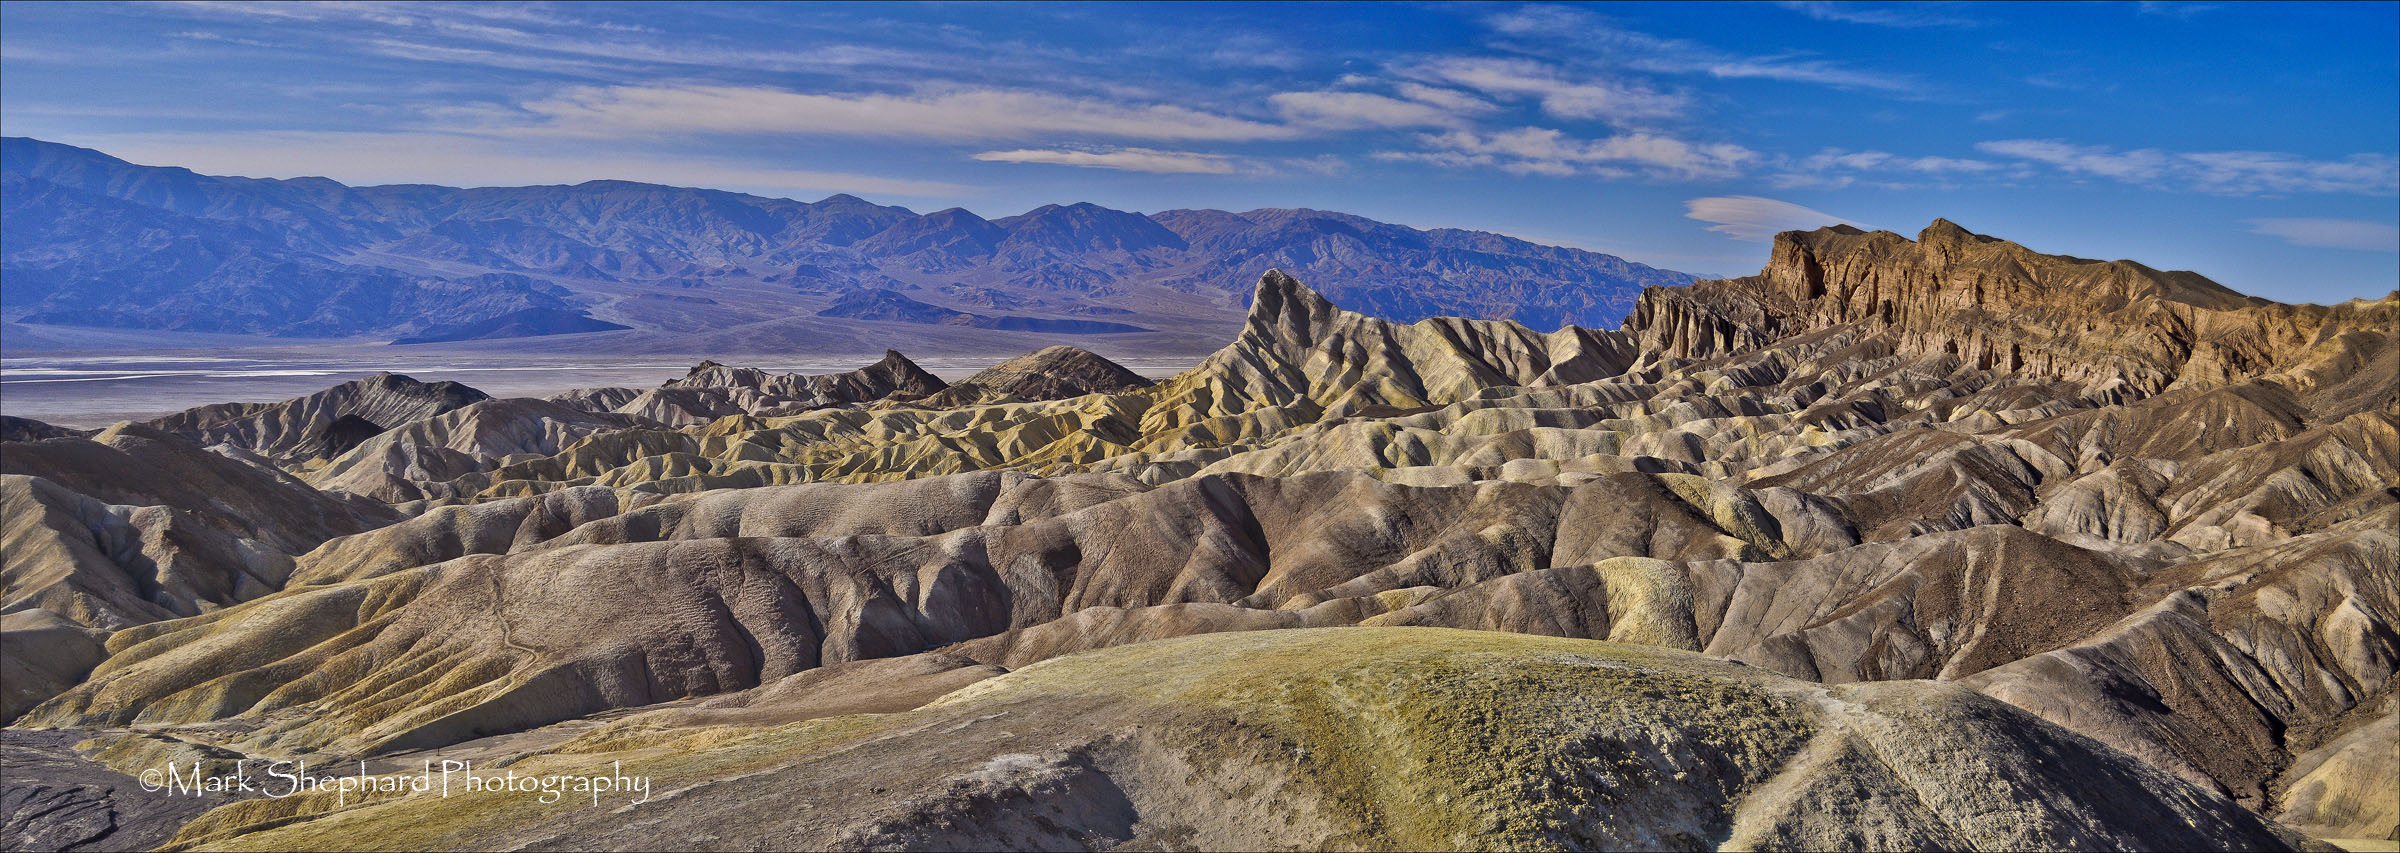 Fall Barn Wallpaper Zabriskie Point Panorama S Opticsandperspectives